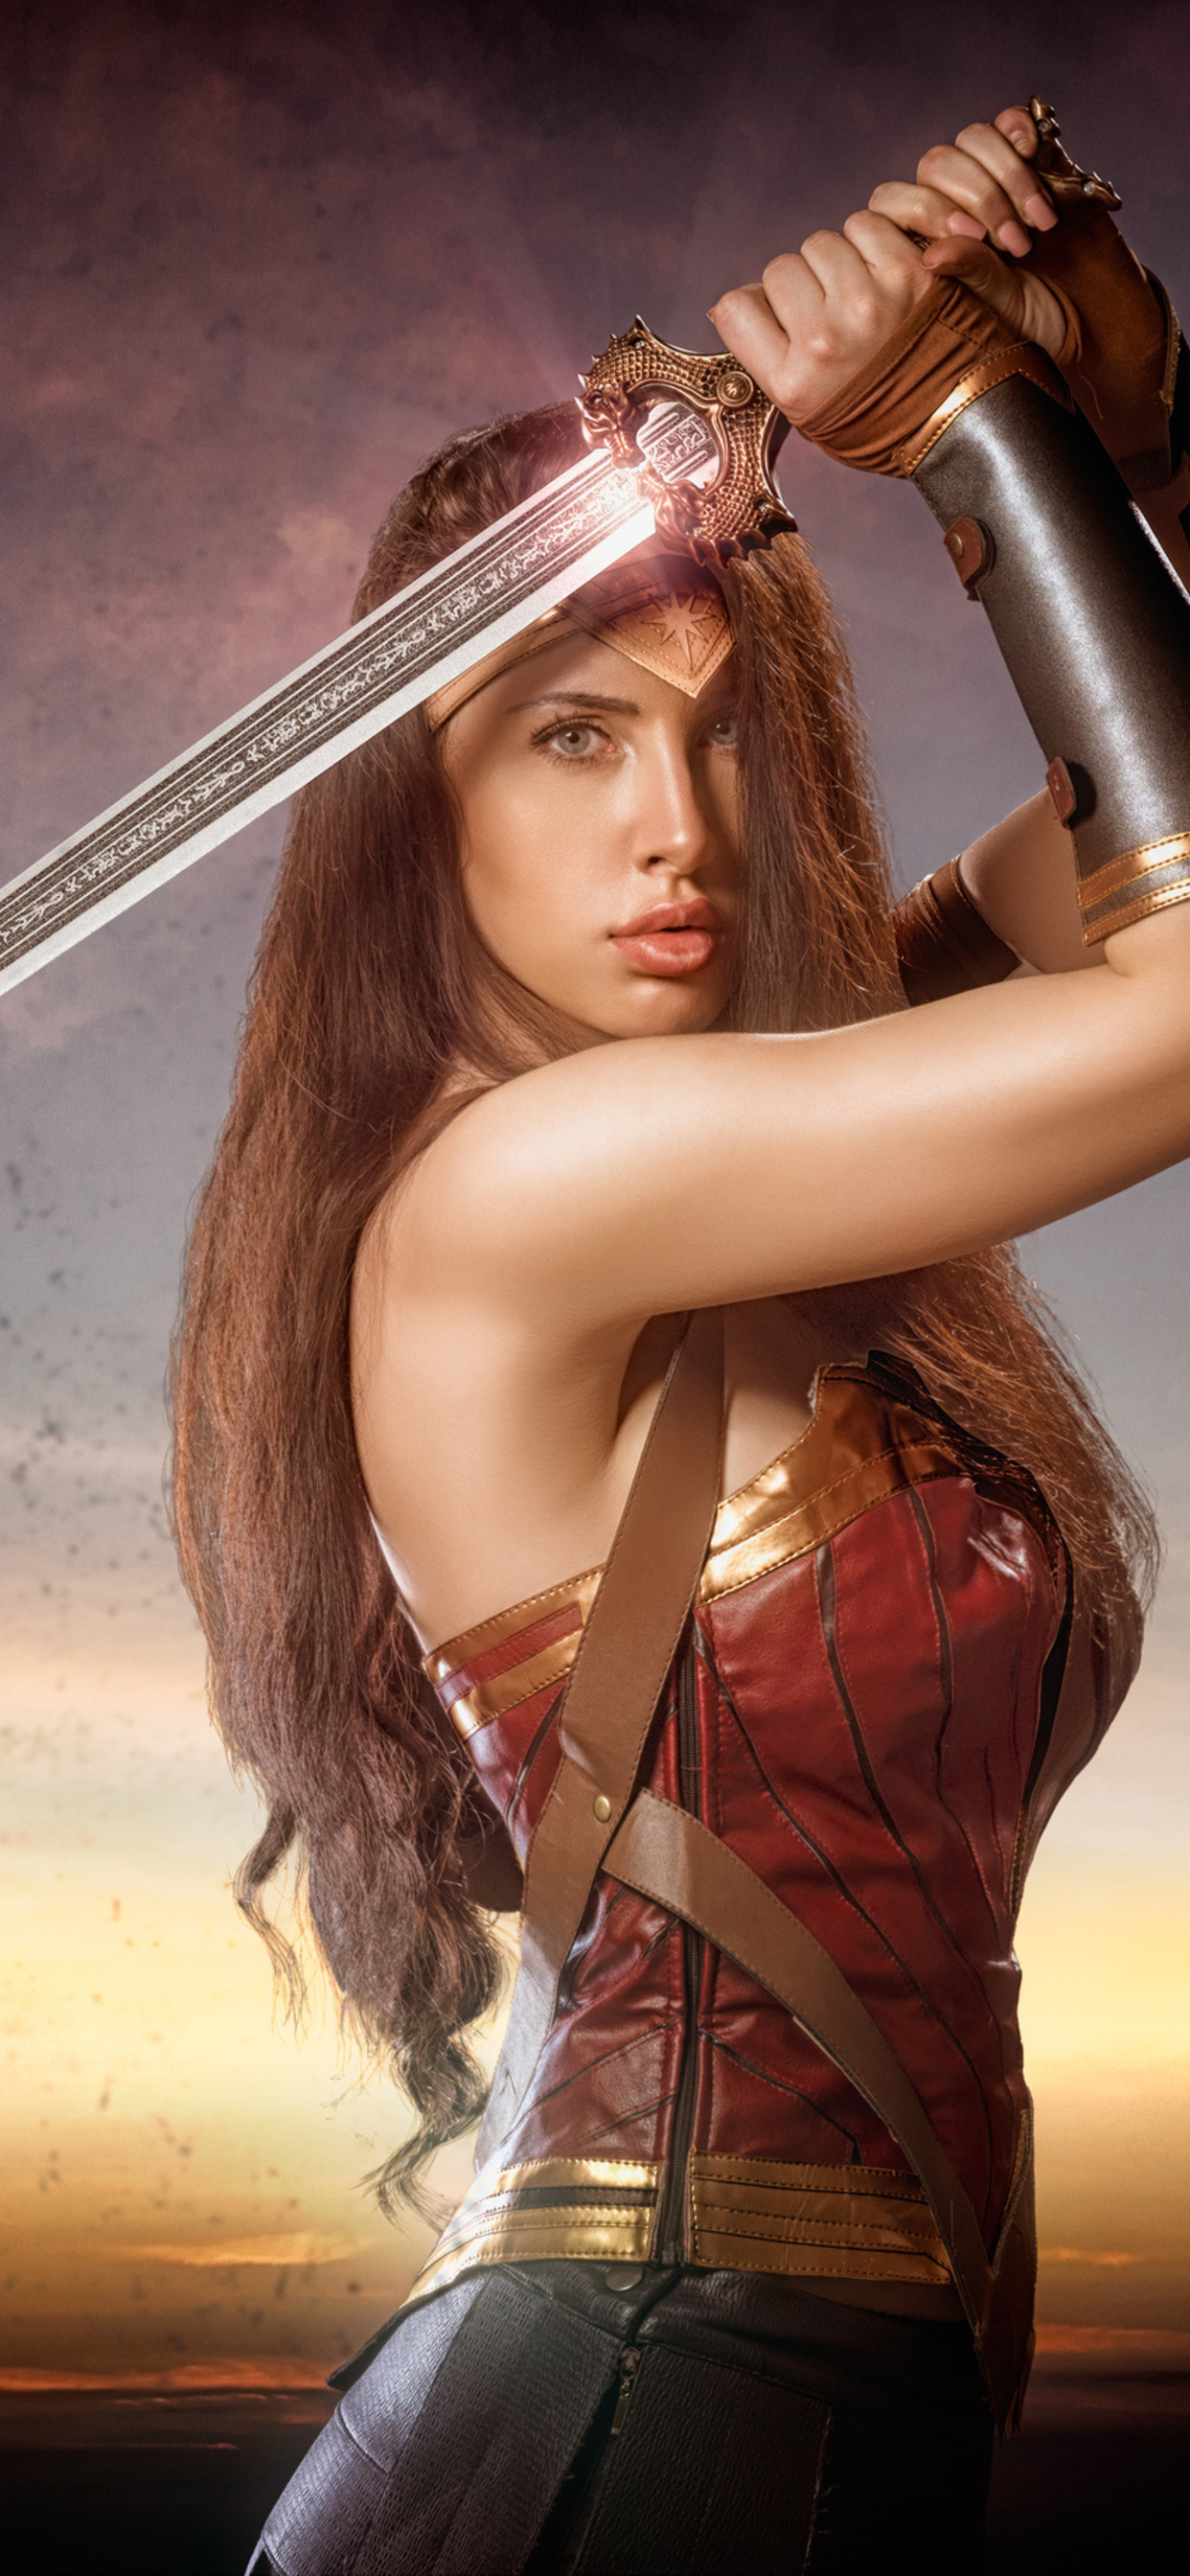 4k-wonder-woman-cosplay-0j.jpg